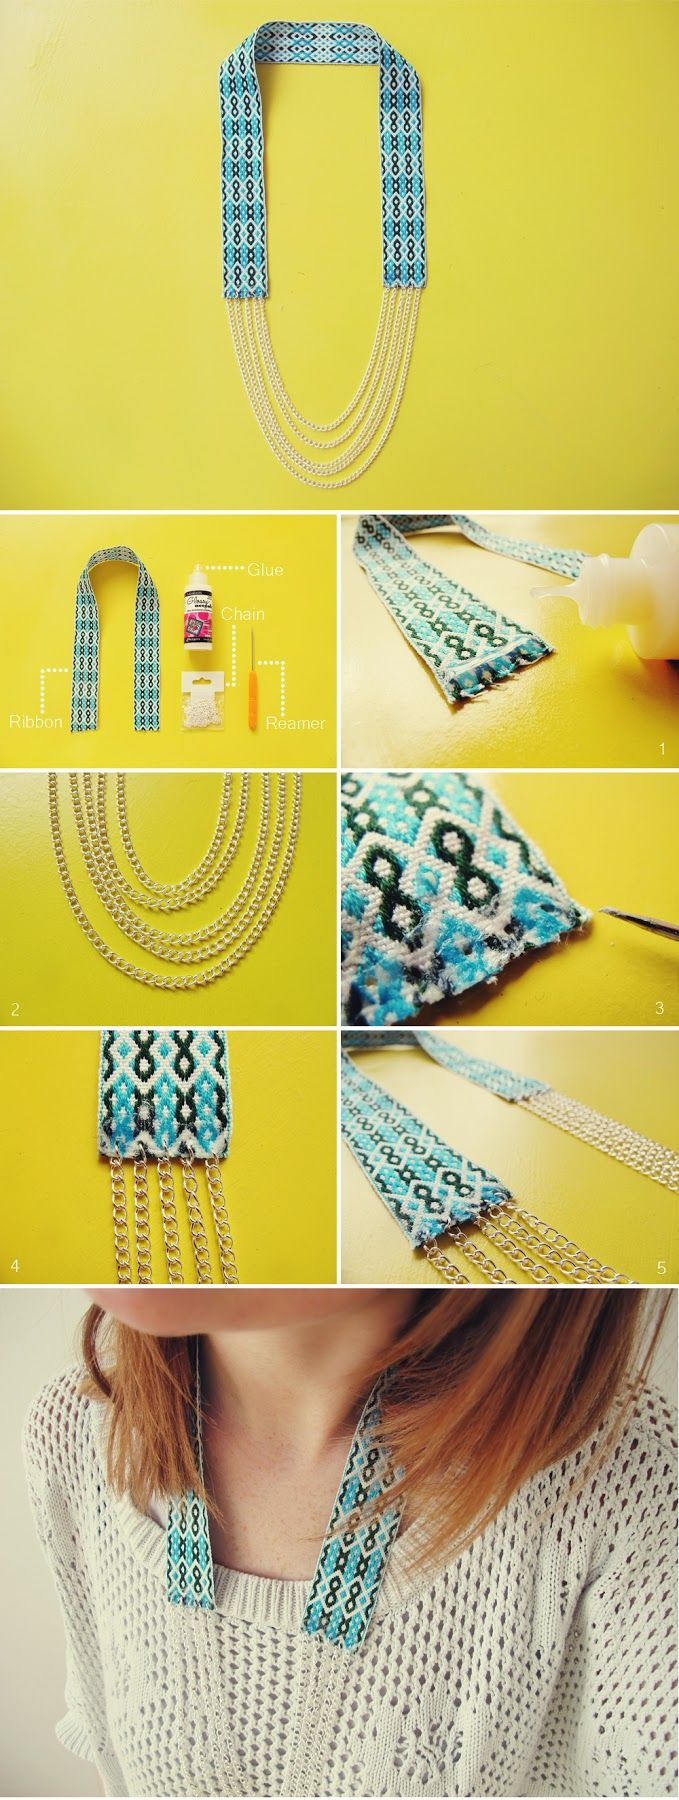 teahab: DIY: Fiona Paxton inspired necklace